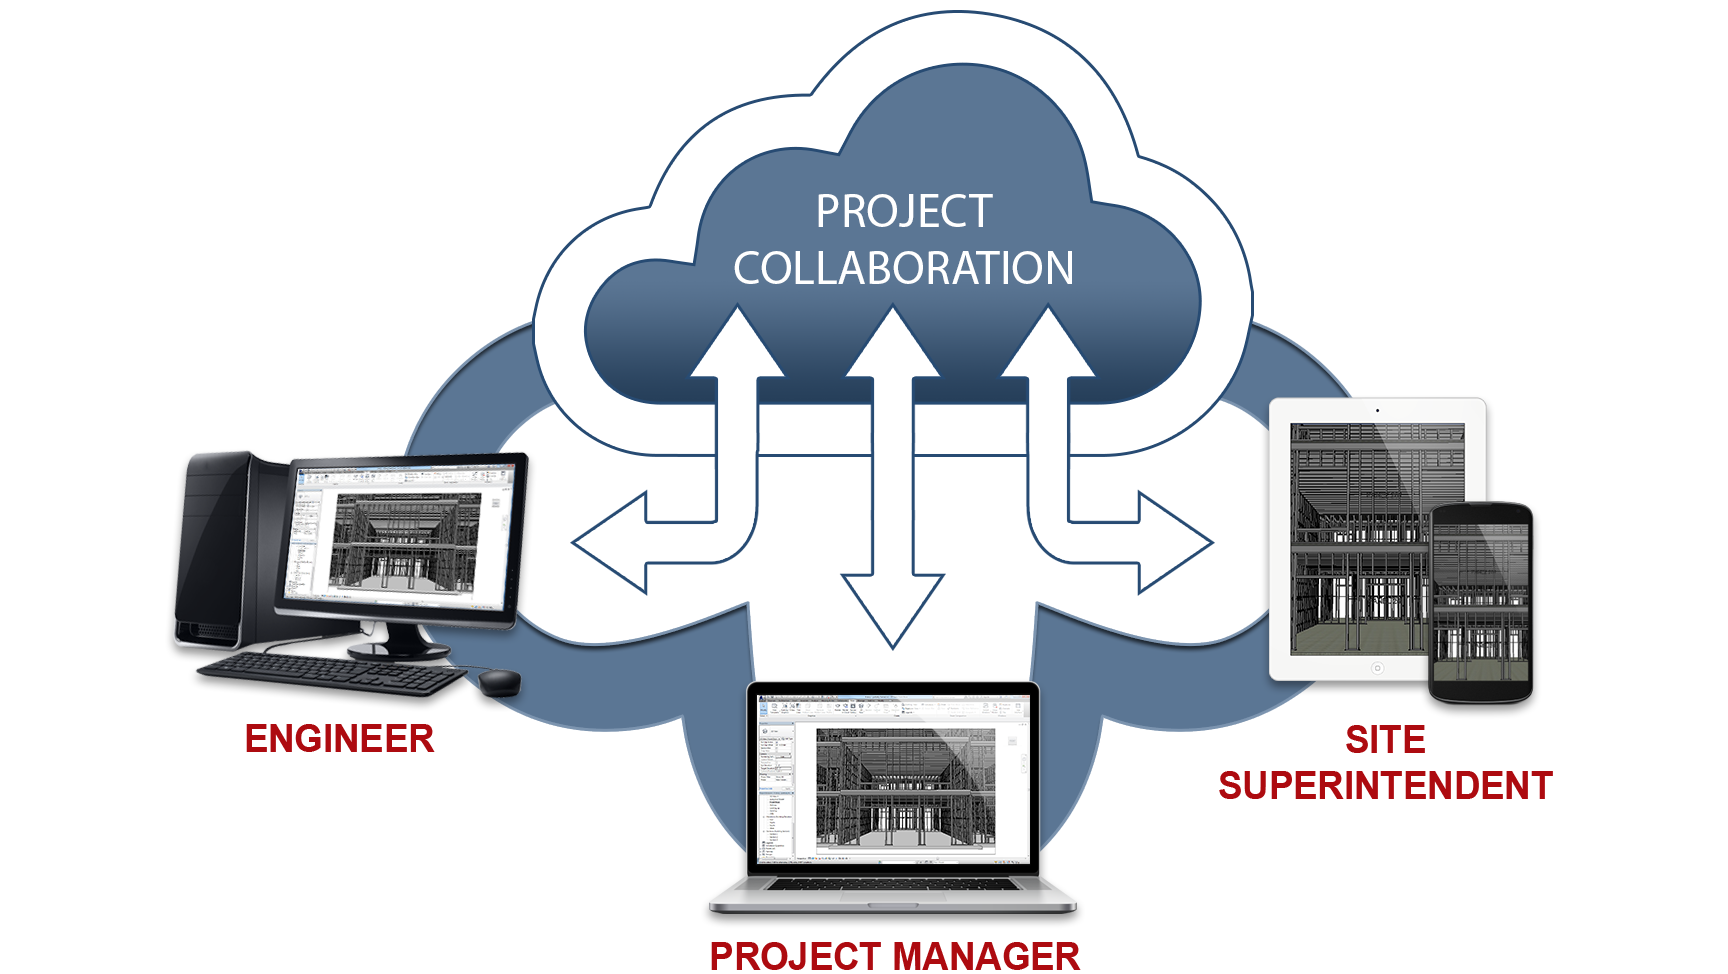 3-D Cloud Based Project Collaboration